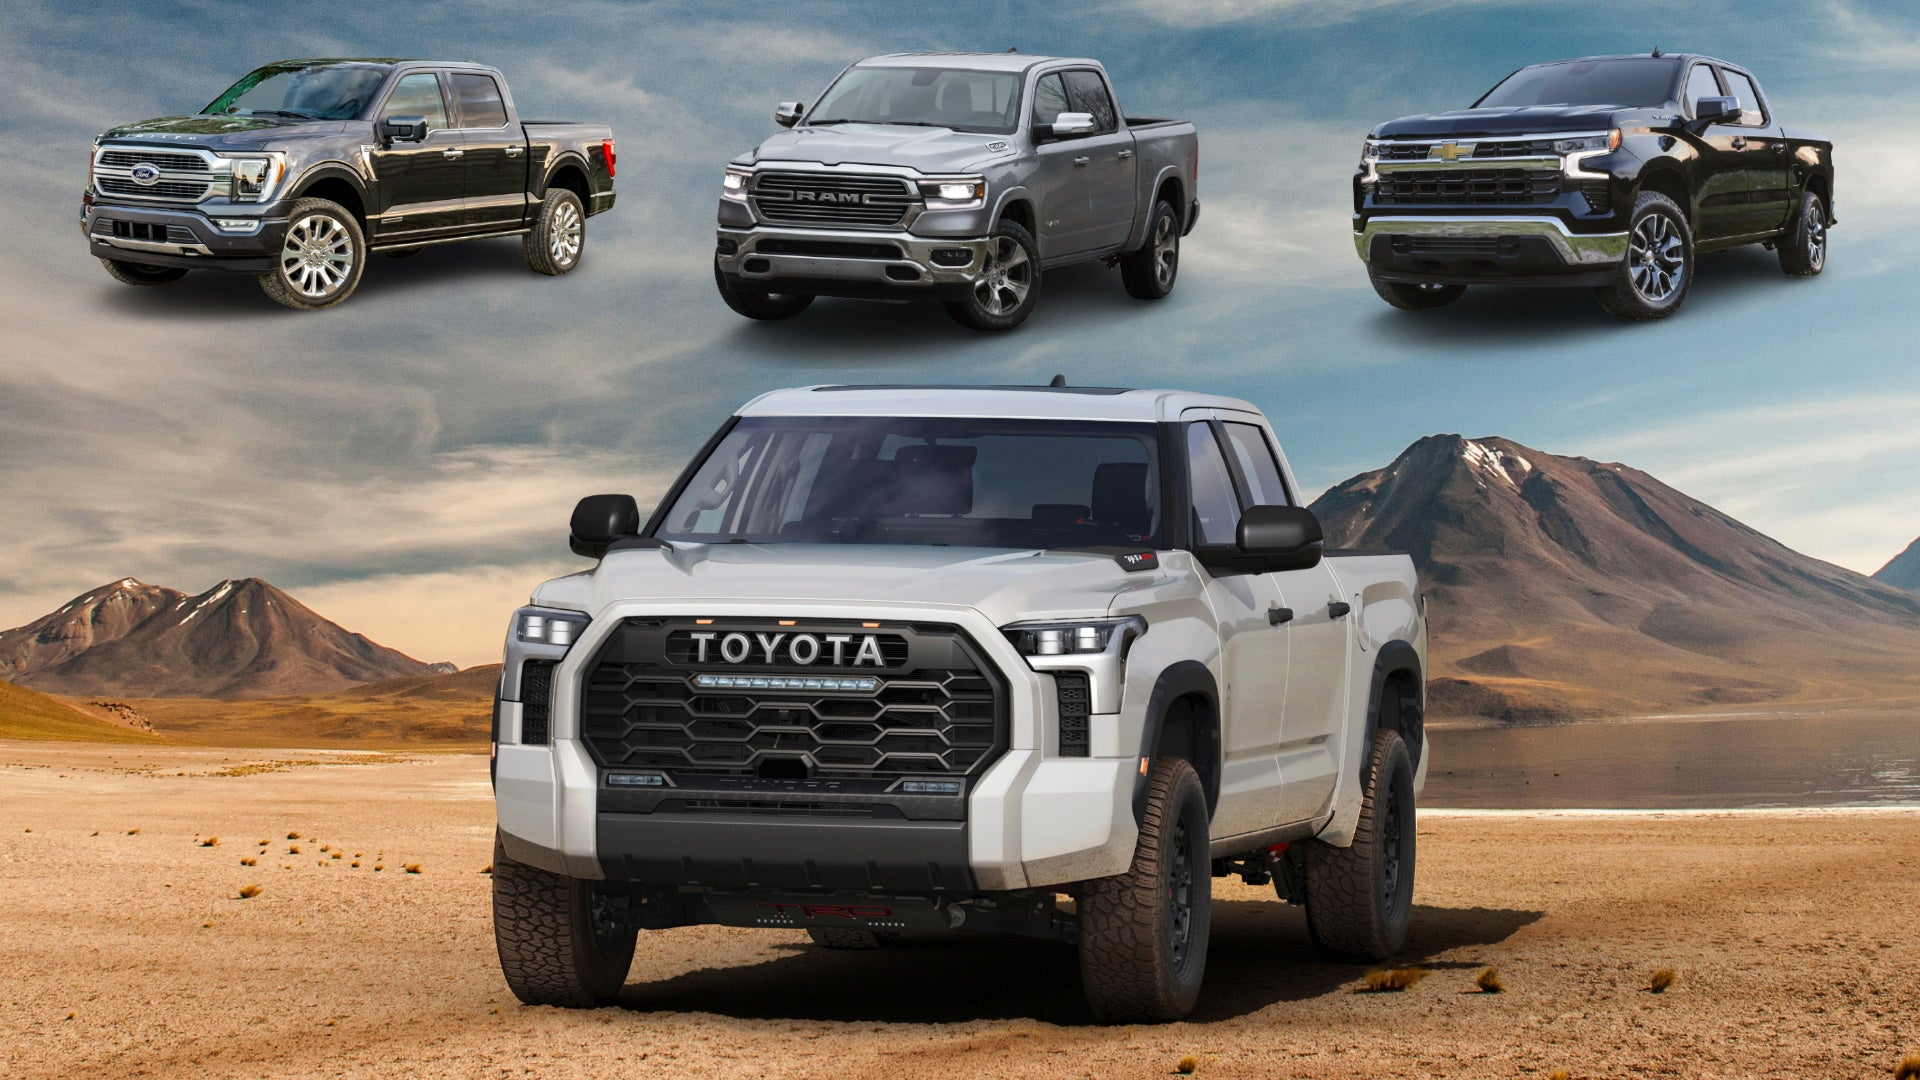 The 2022 Toyota Tundra Compared to the Ford F-150, Ram 1500, Chevy Silverado 1500 - The Drive